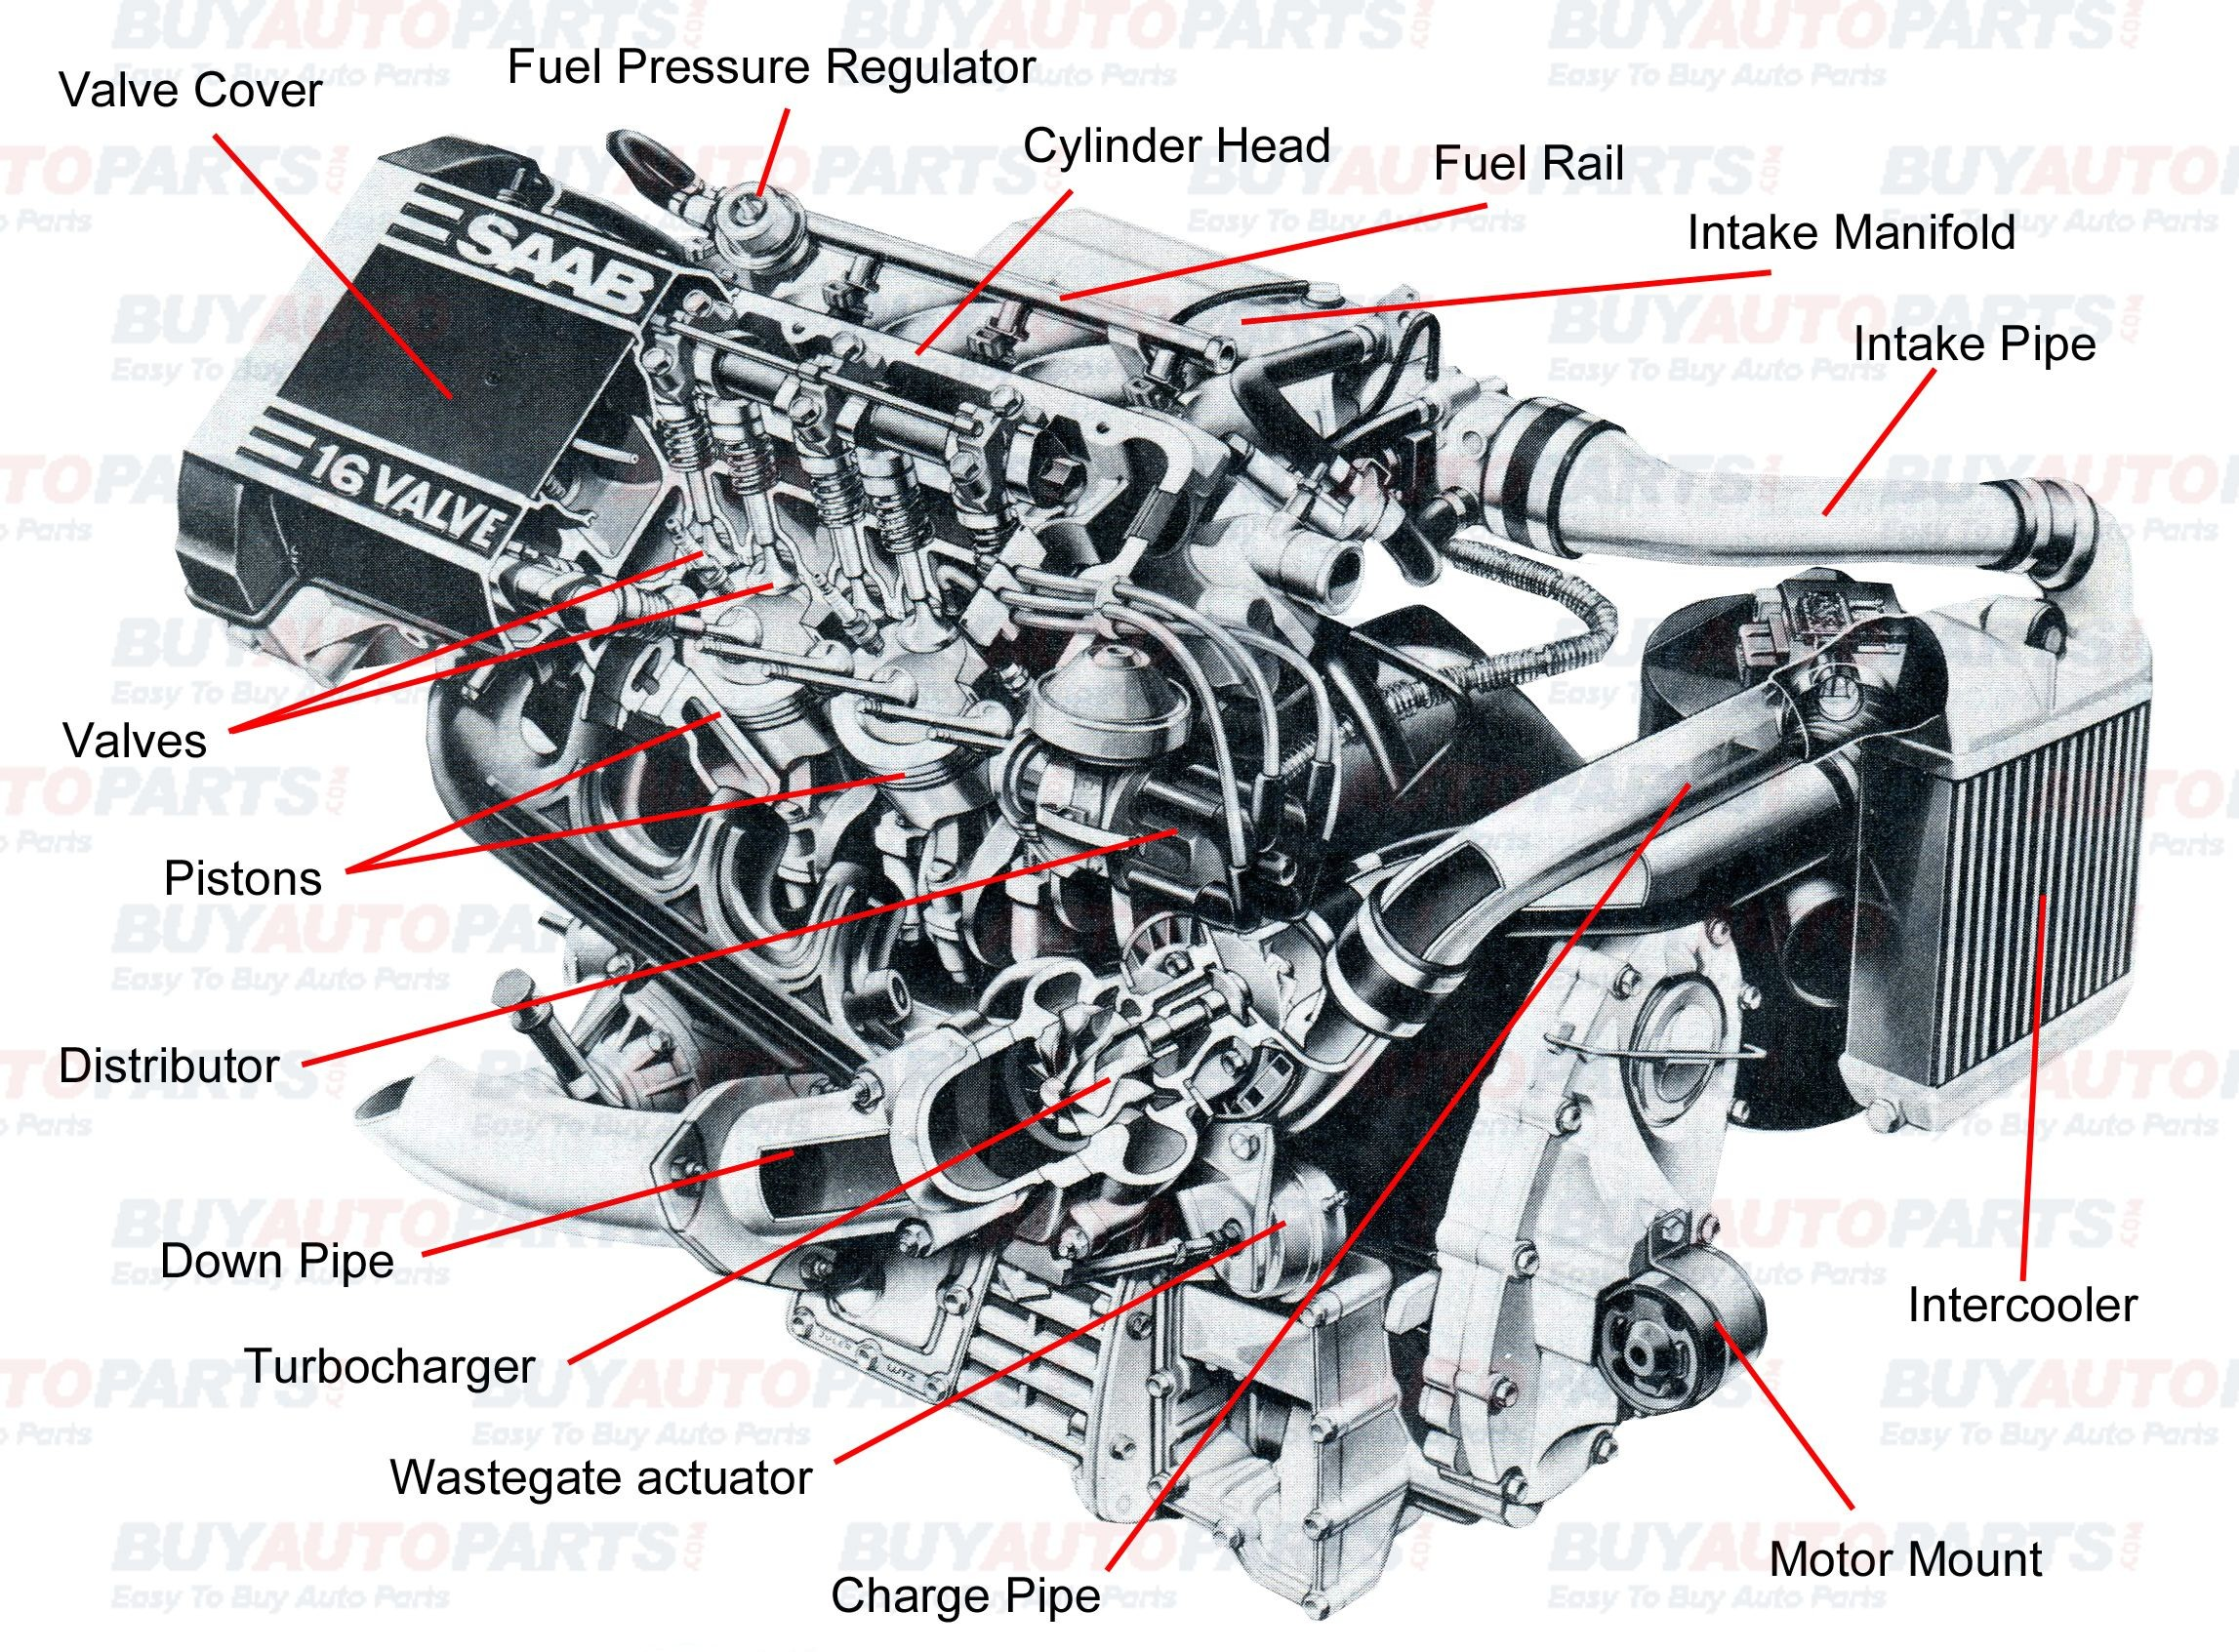 Diagram for Car Engine All Internal Bustion Engines Have the Same Basic Ponents the